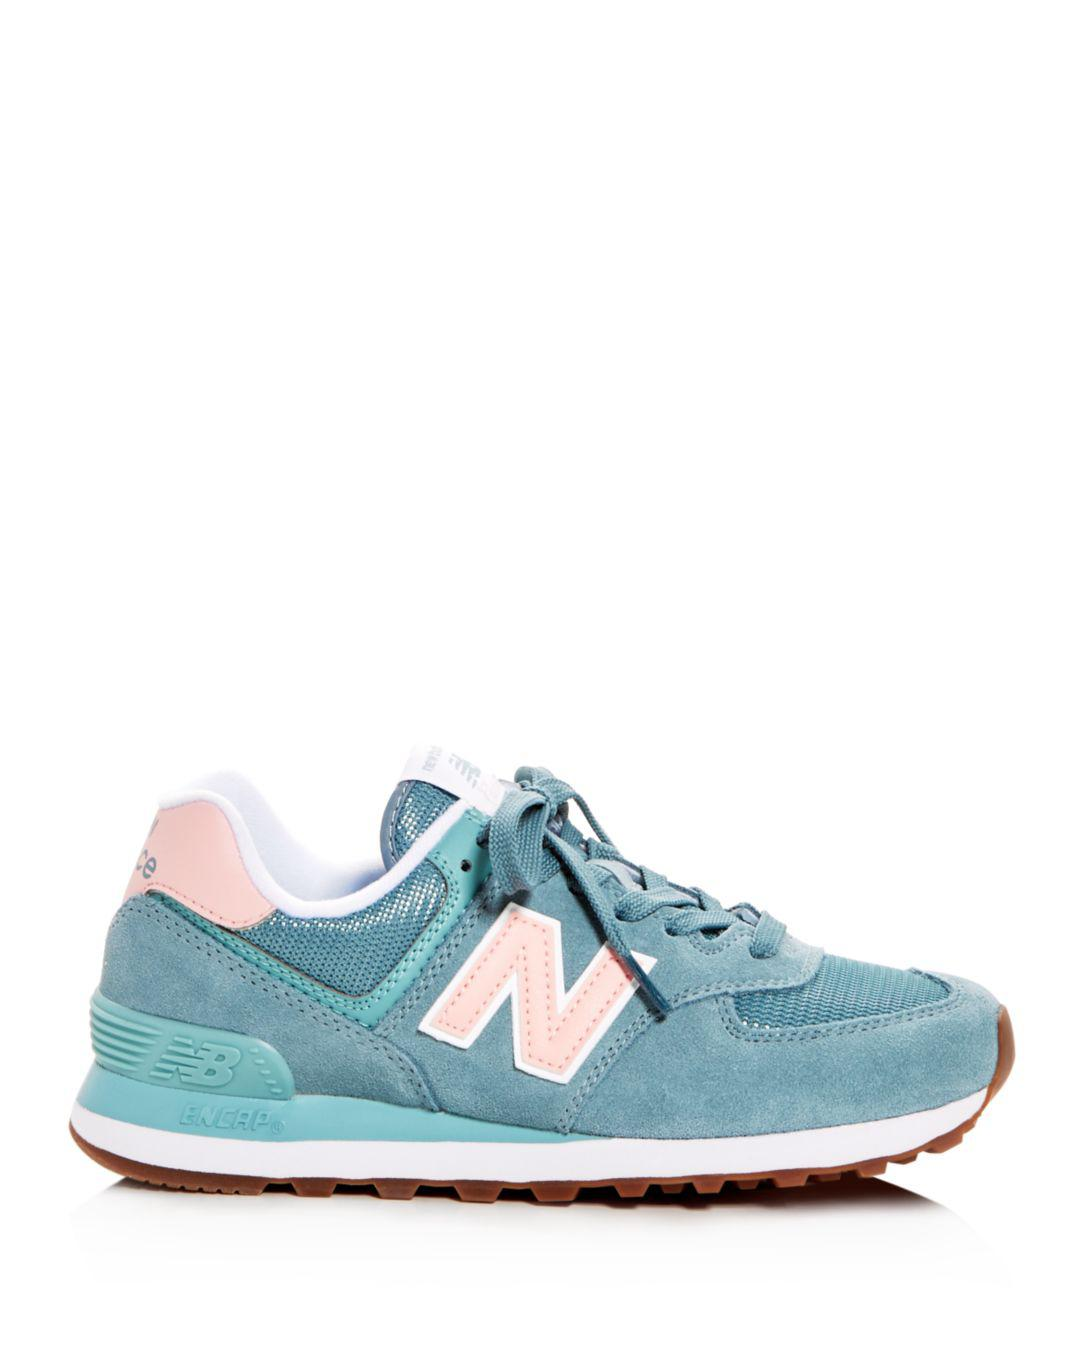 classic free delivery save up to 80% New Balance Women's Classic 574 Summer Dusk Nubuck Leather Lace Up ...